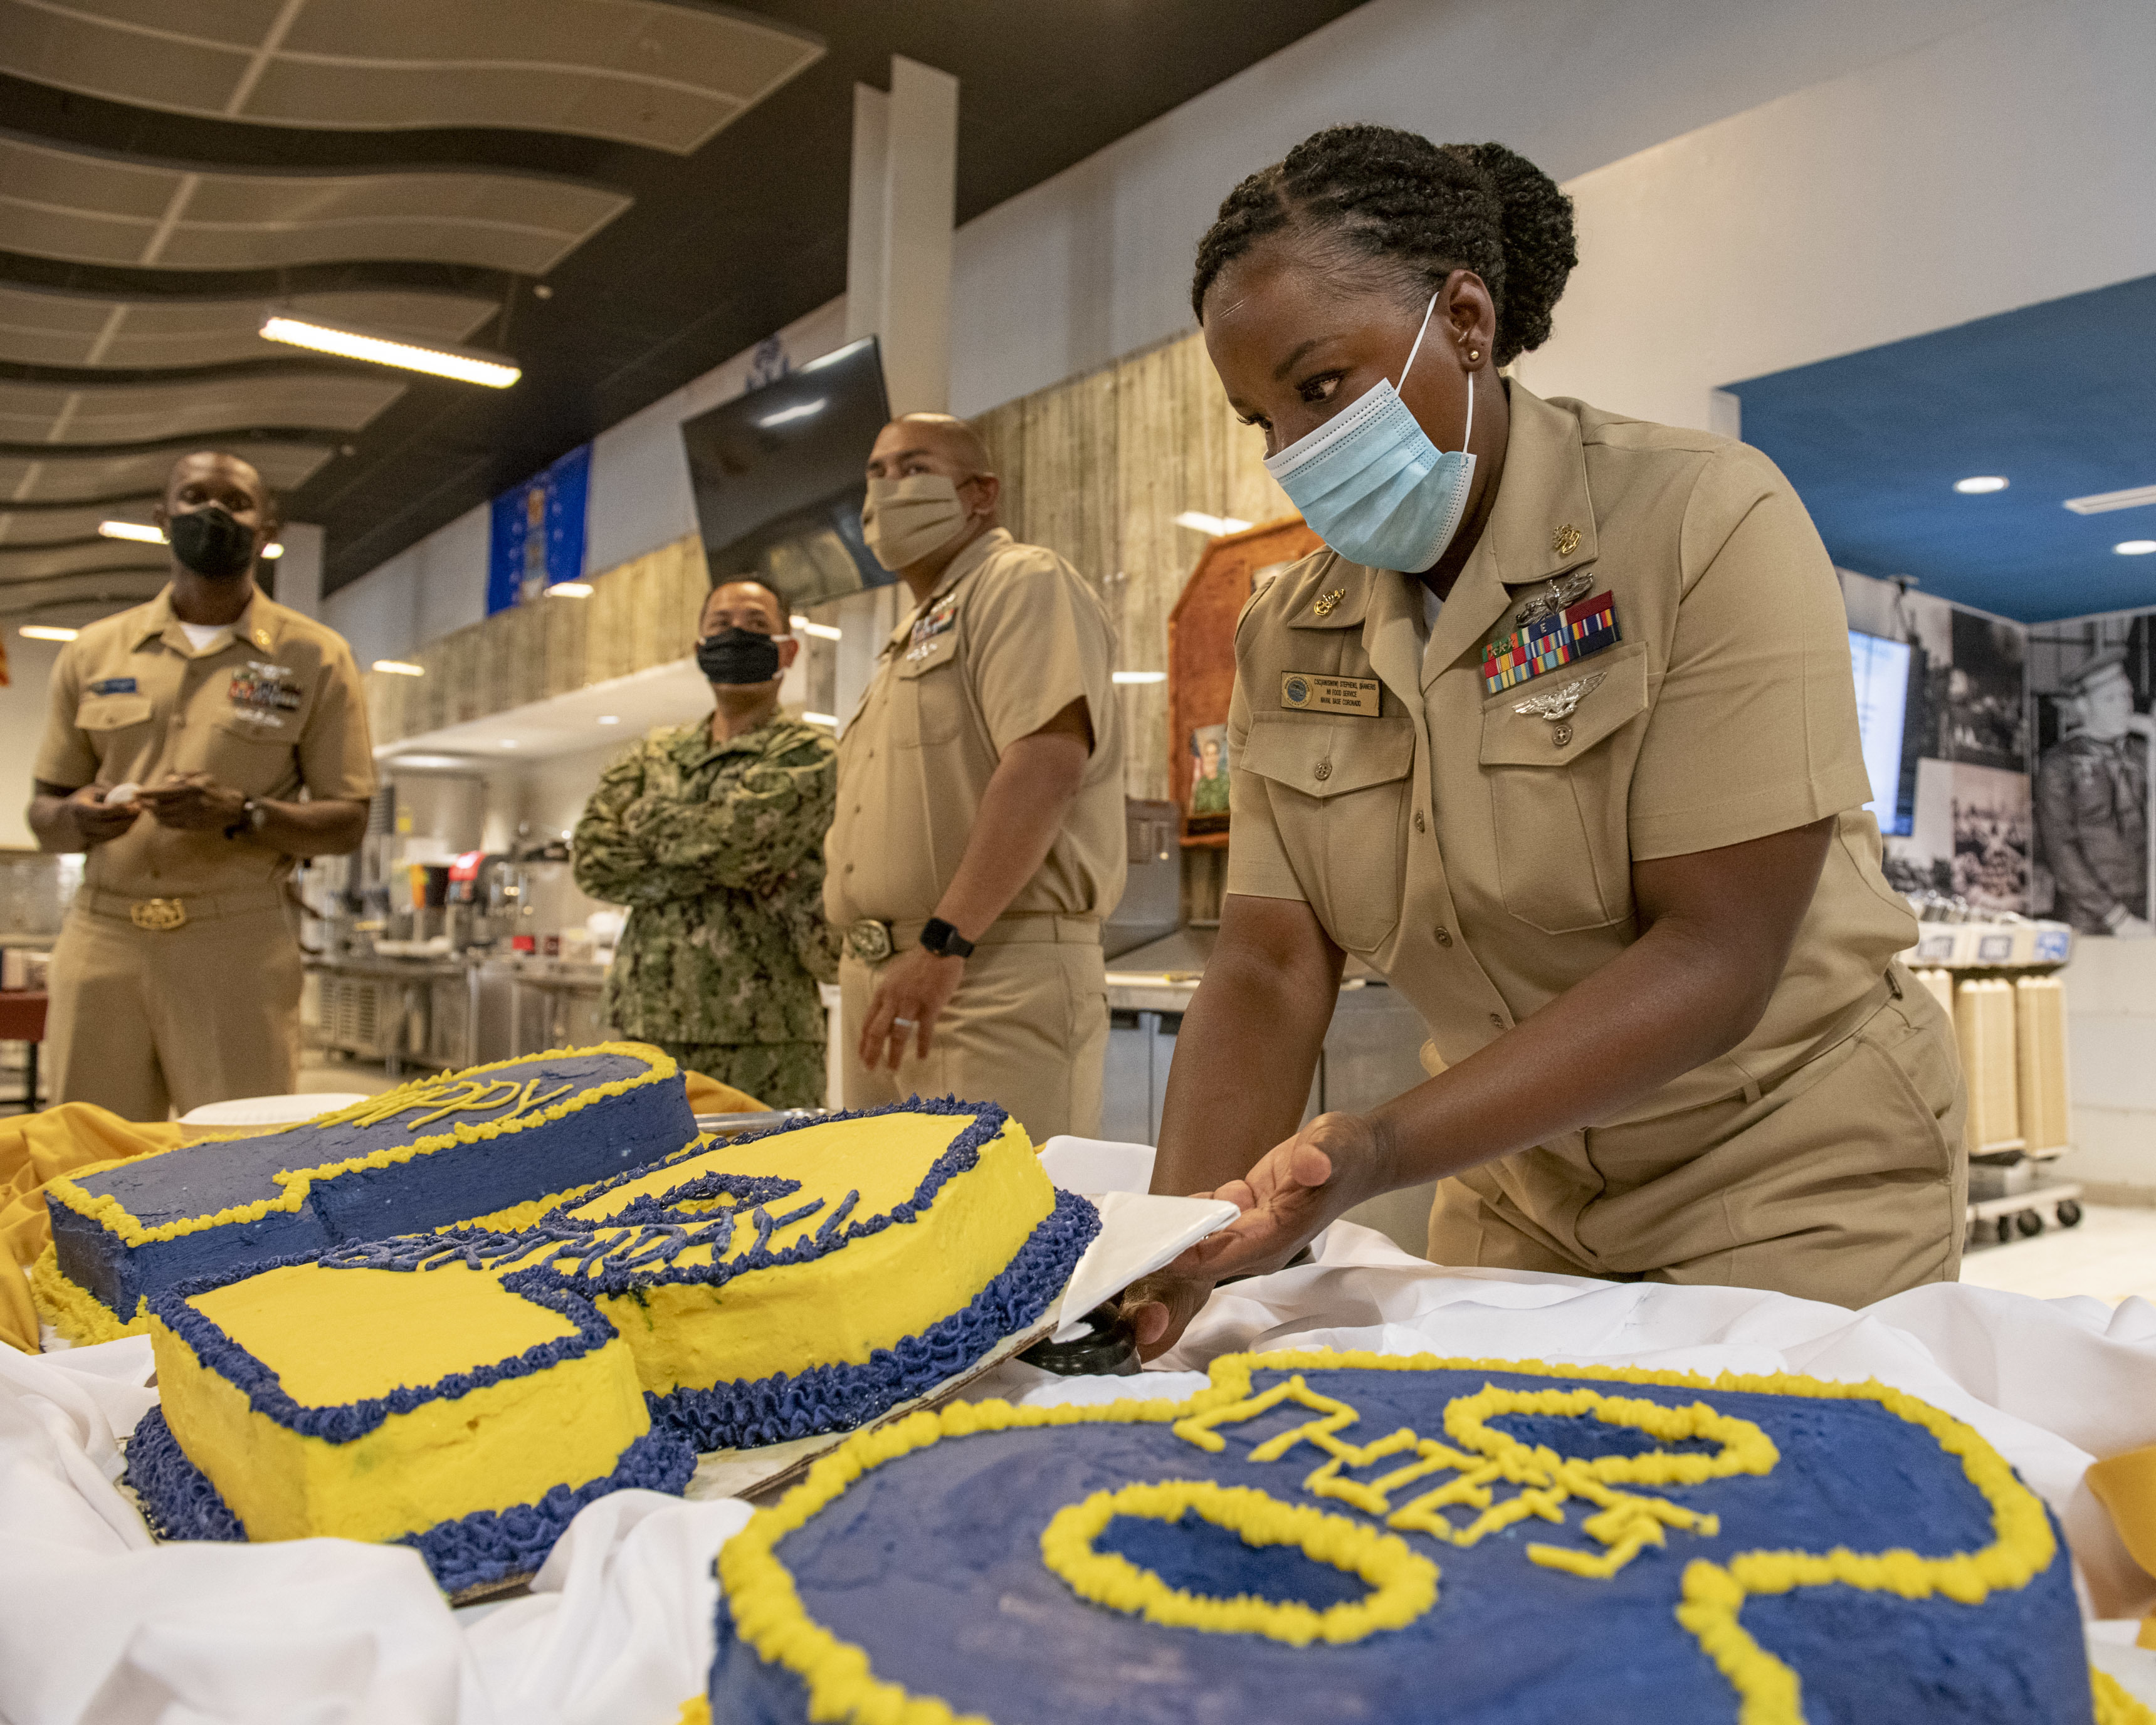 Lafayette Native Celebrates the 128th Birthday of the Rate of Chief Petty Officer